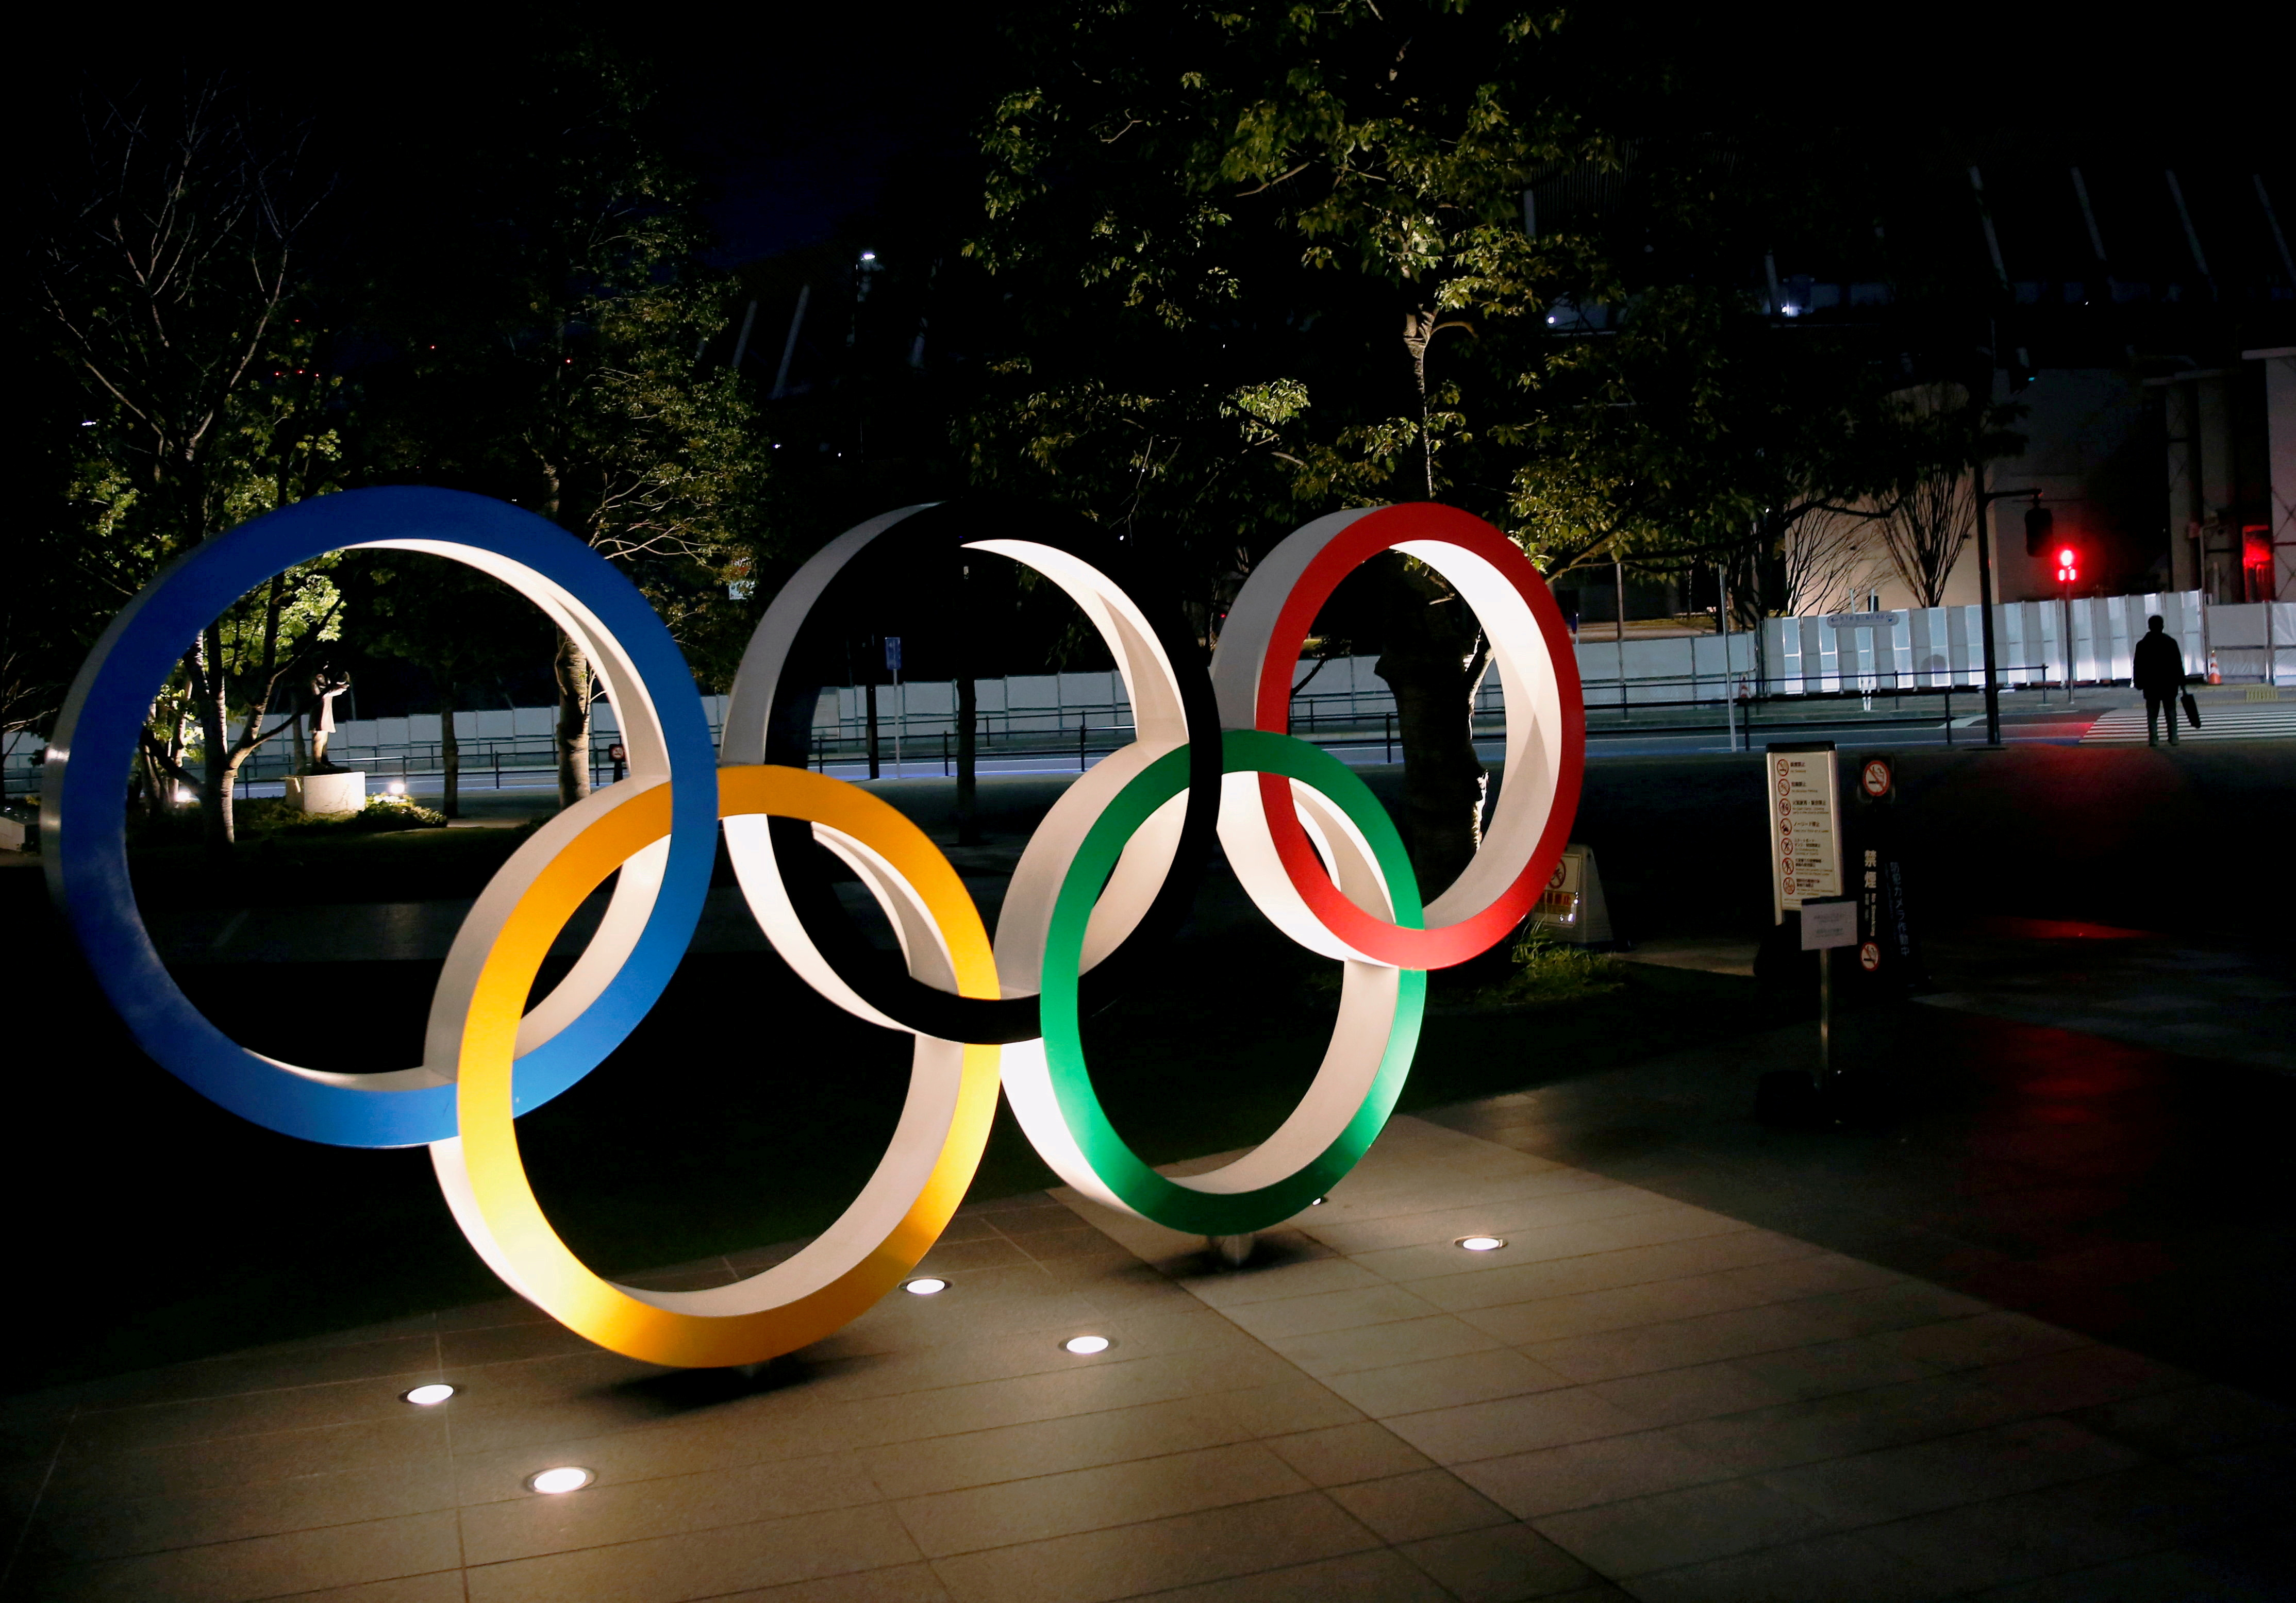 The Olympic rings are illuminated in front of the National Stadium in Tokyo, Japan January 22, 2021. REUTERS/Kim Kyung-Hoon/File Photo